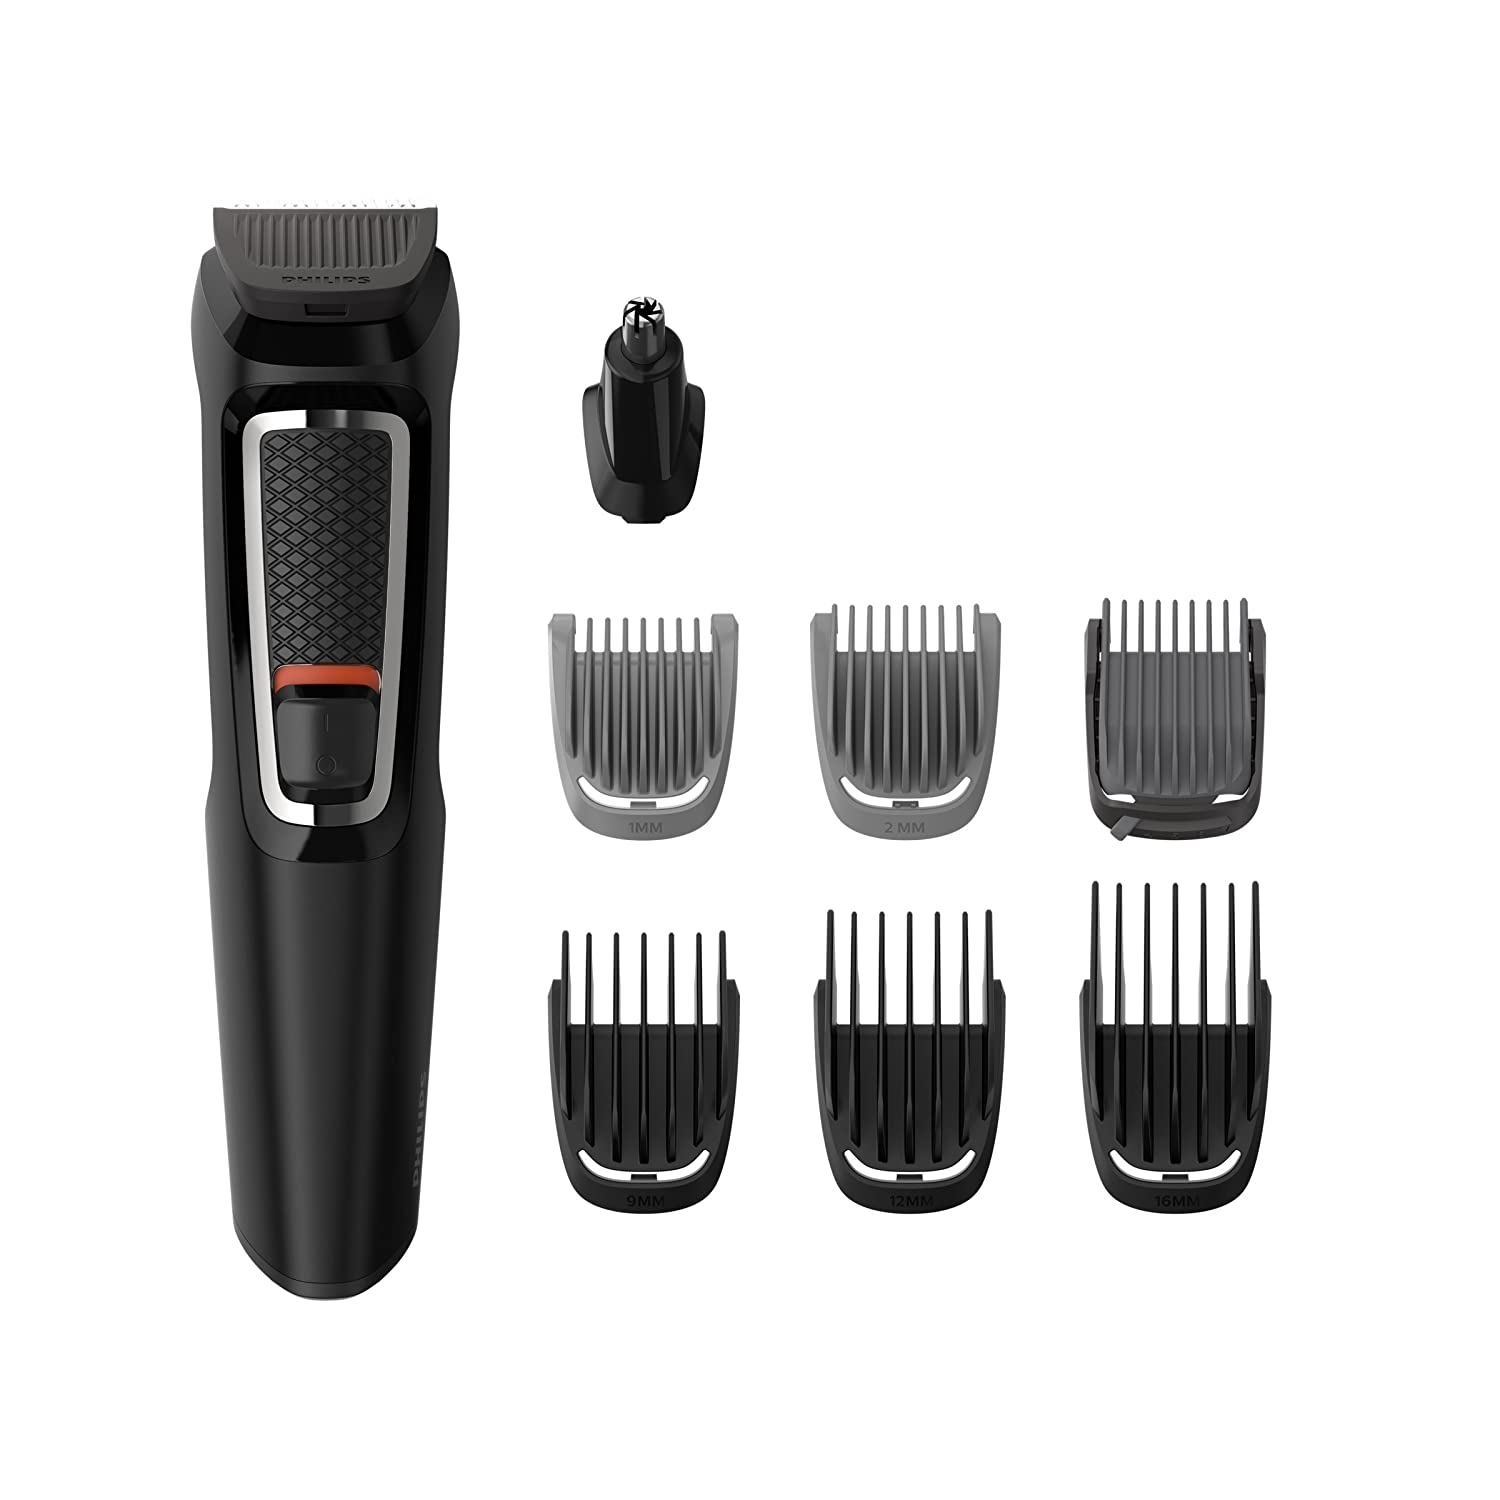 Philips MG Recortador de barba y precisión  cuchillas autoafilables incluye Funda